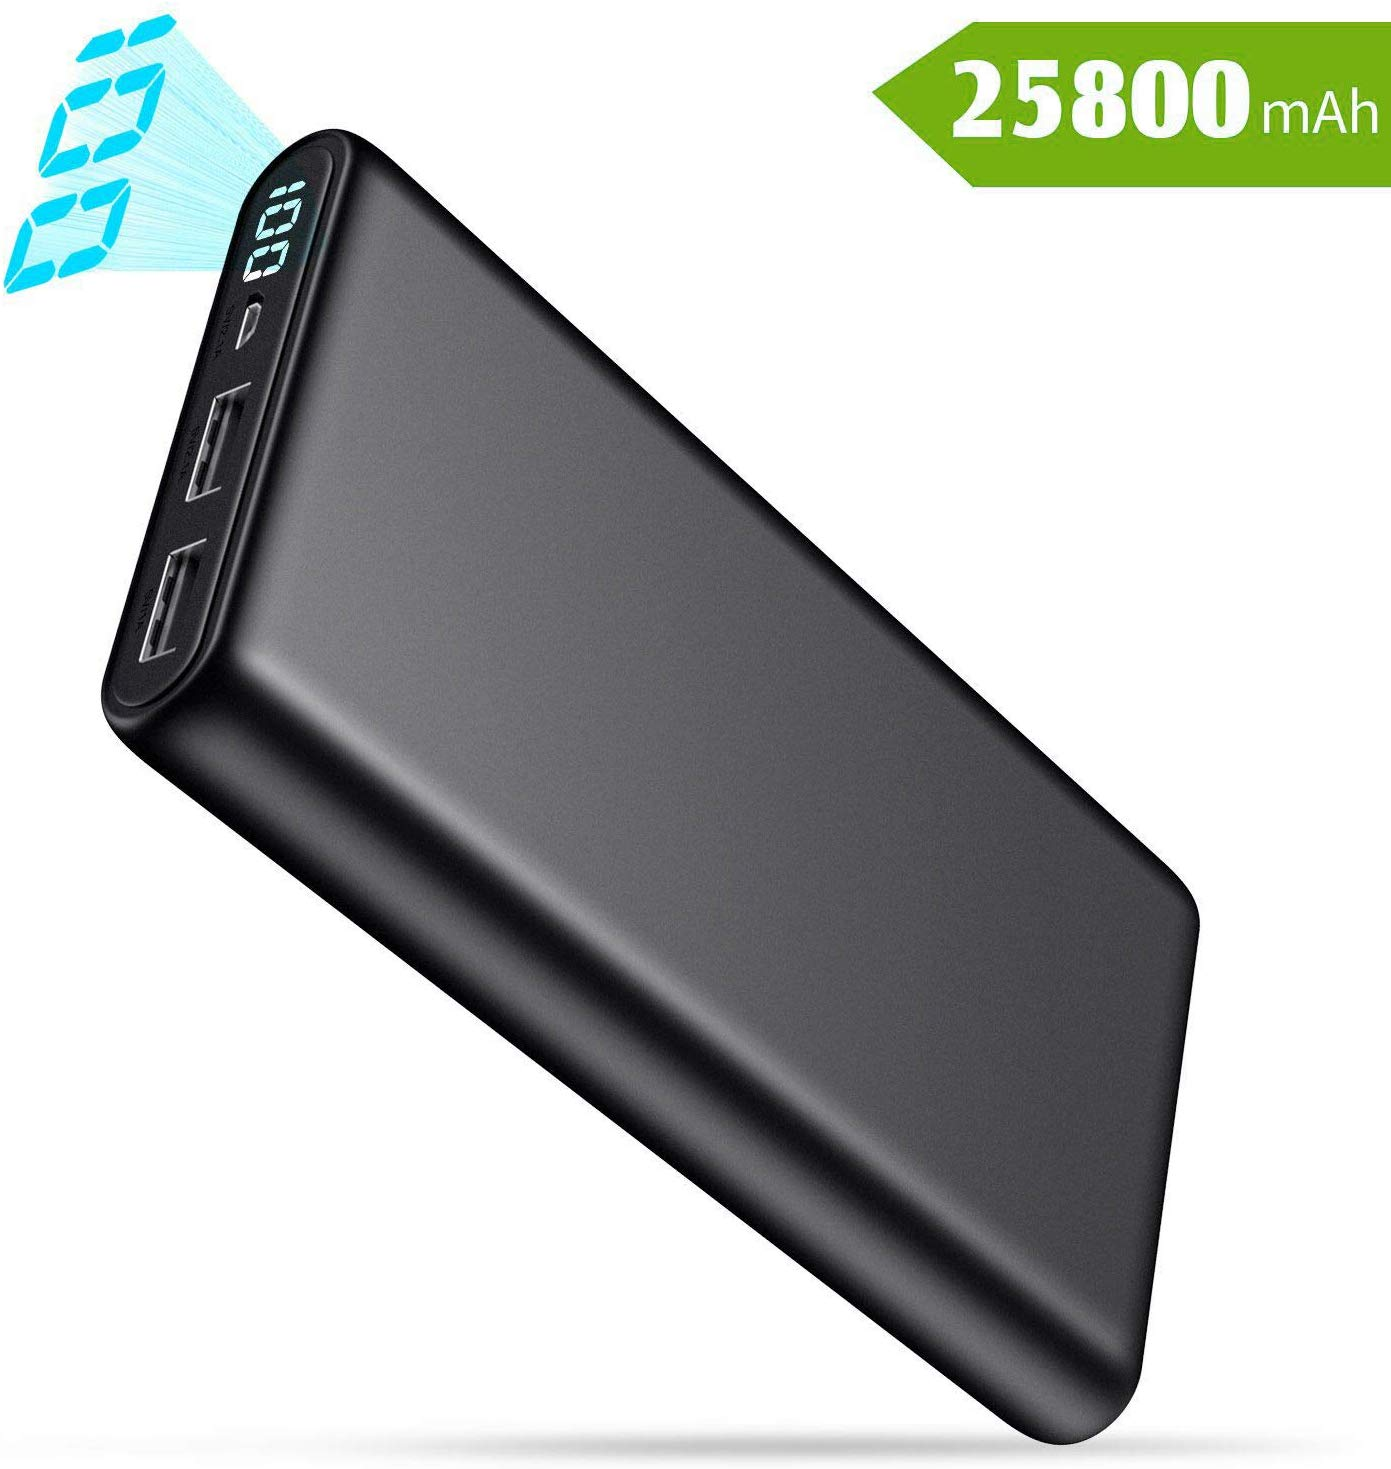 QTshine Power Bank, Portable Charger [25800mAh] High Capacity External Battery Pack